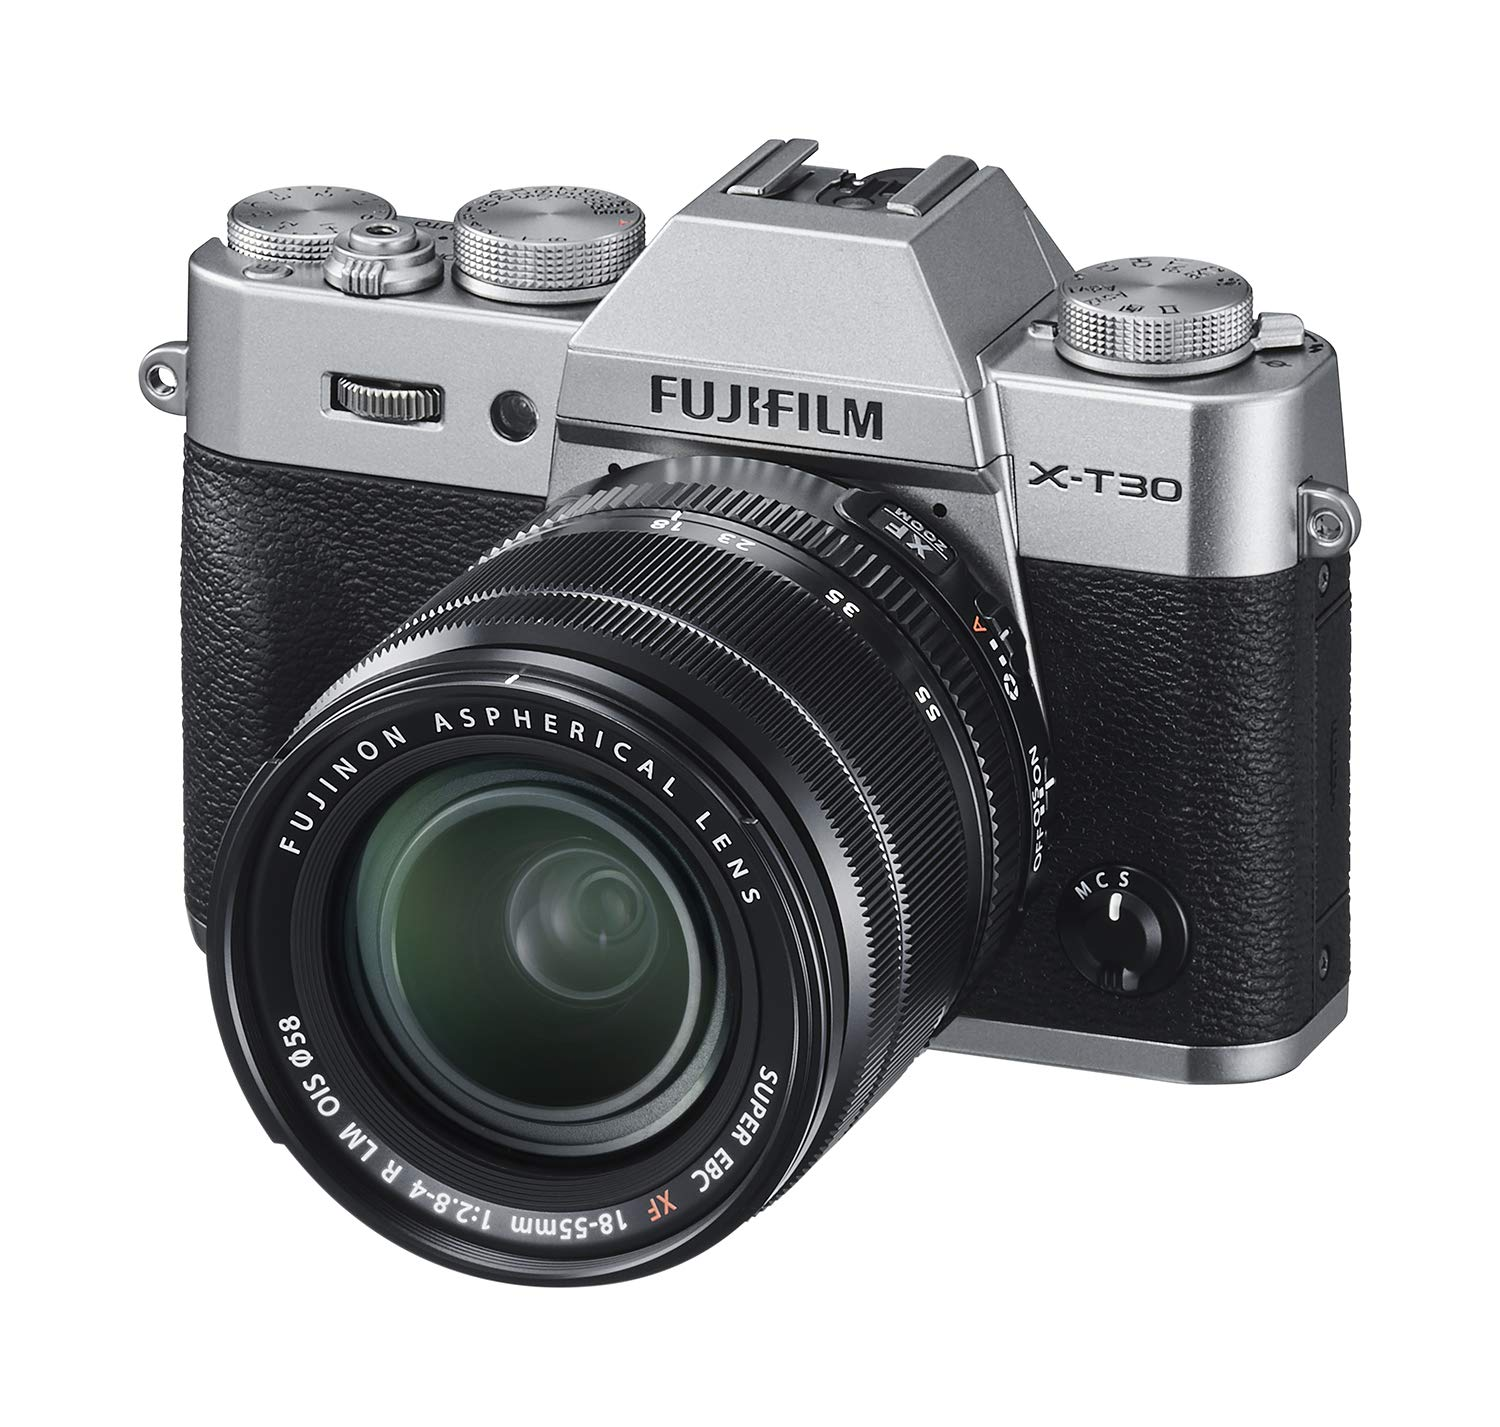 Fujifilm X-T30 Mirrorless Digital Camera w/XF18-55mm Kit - Silver